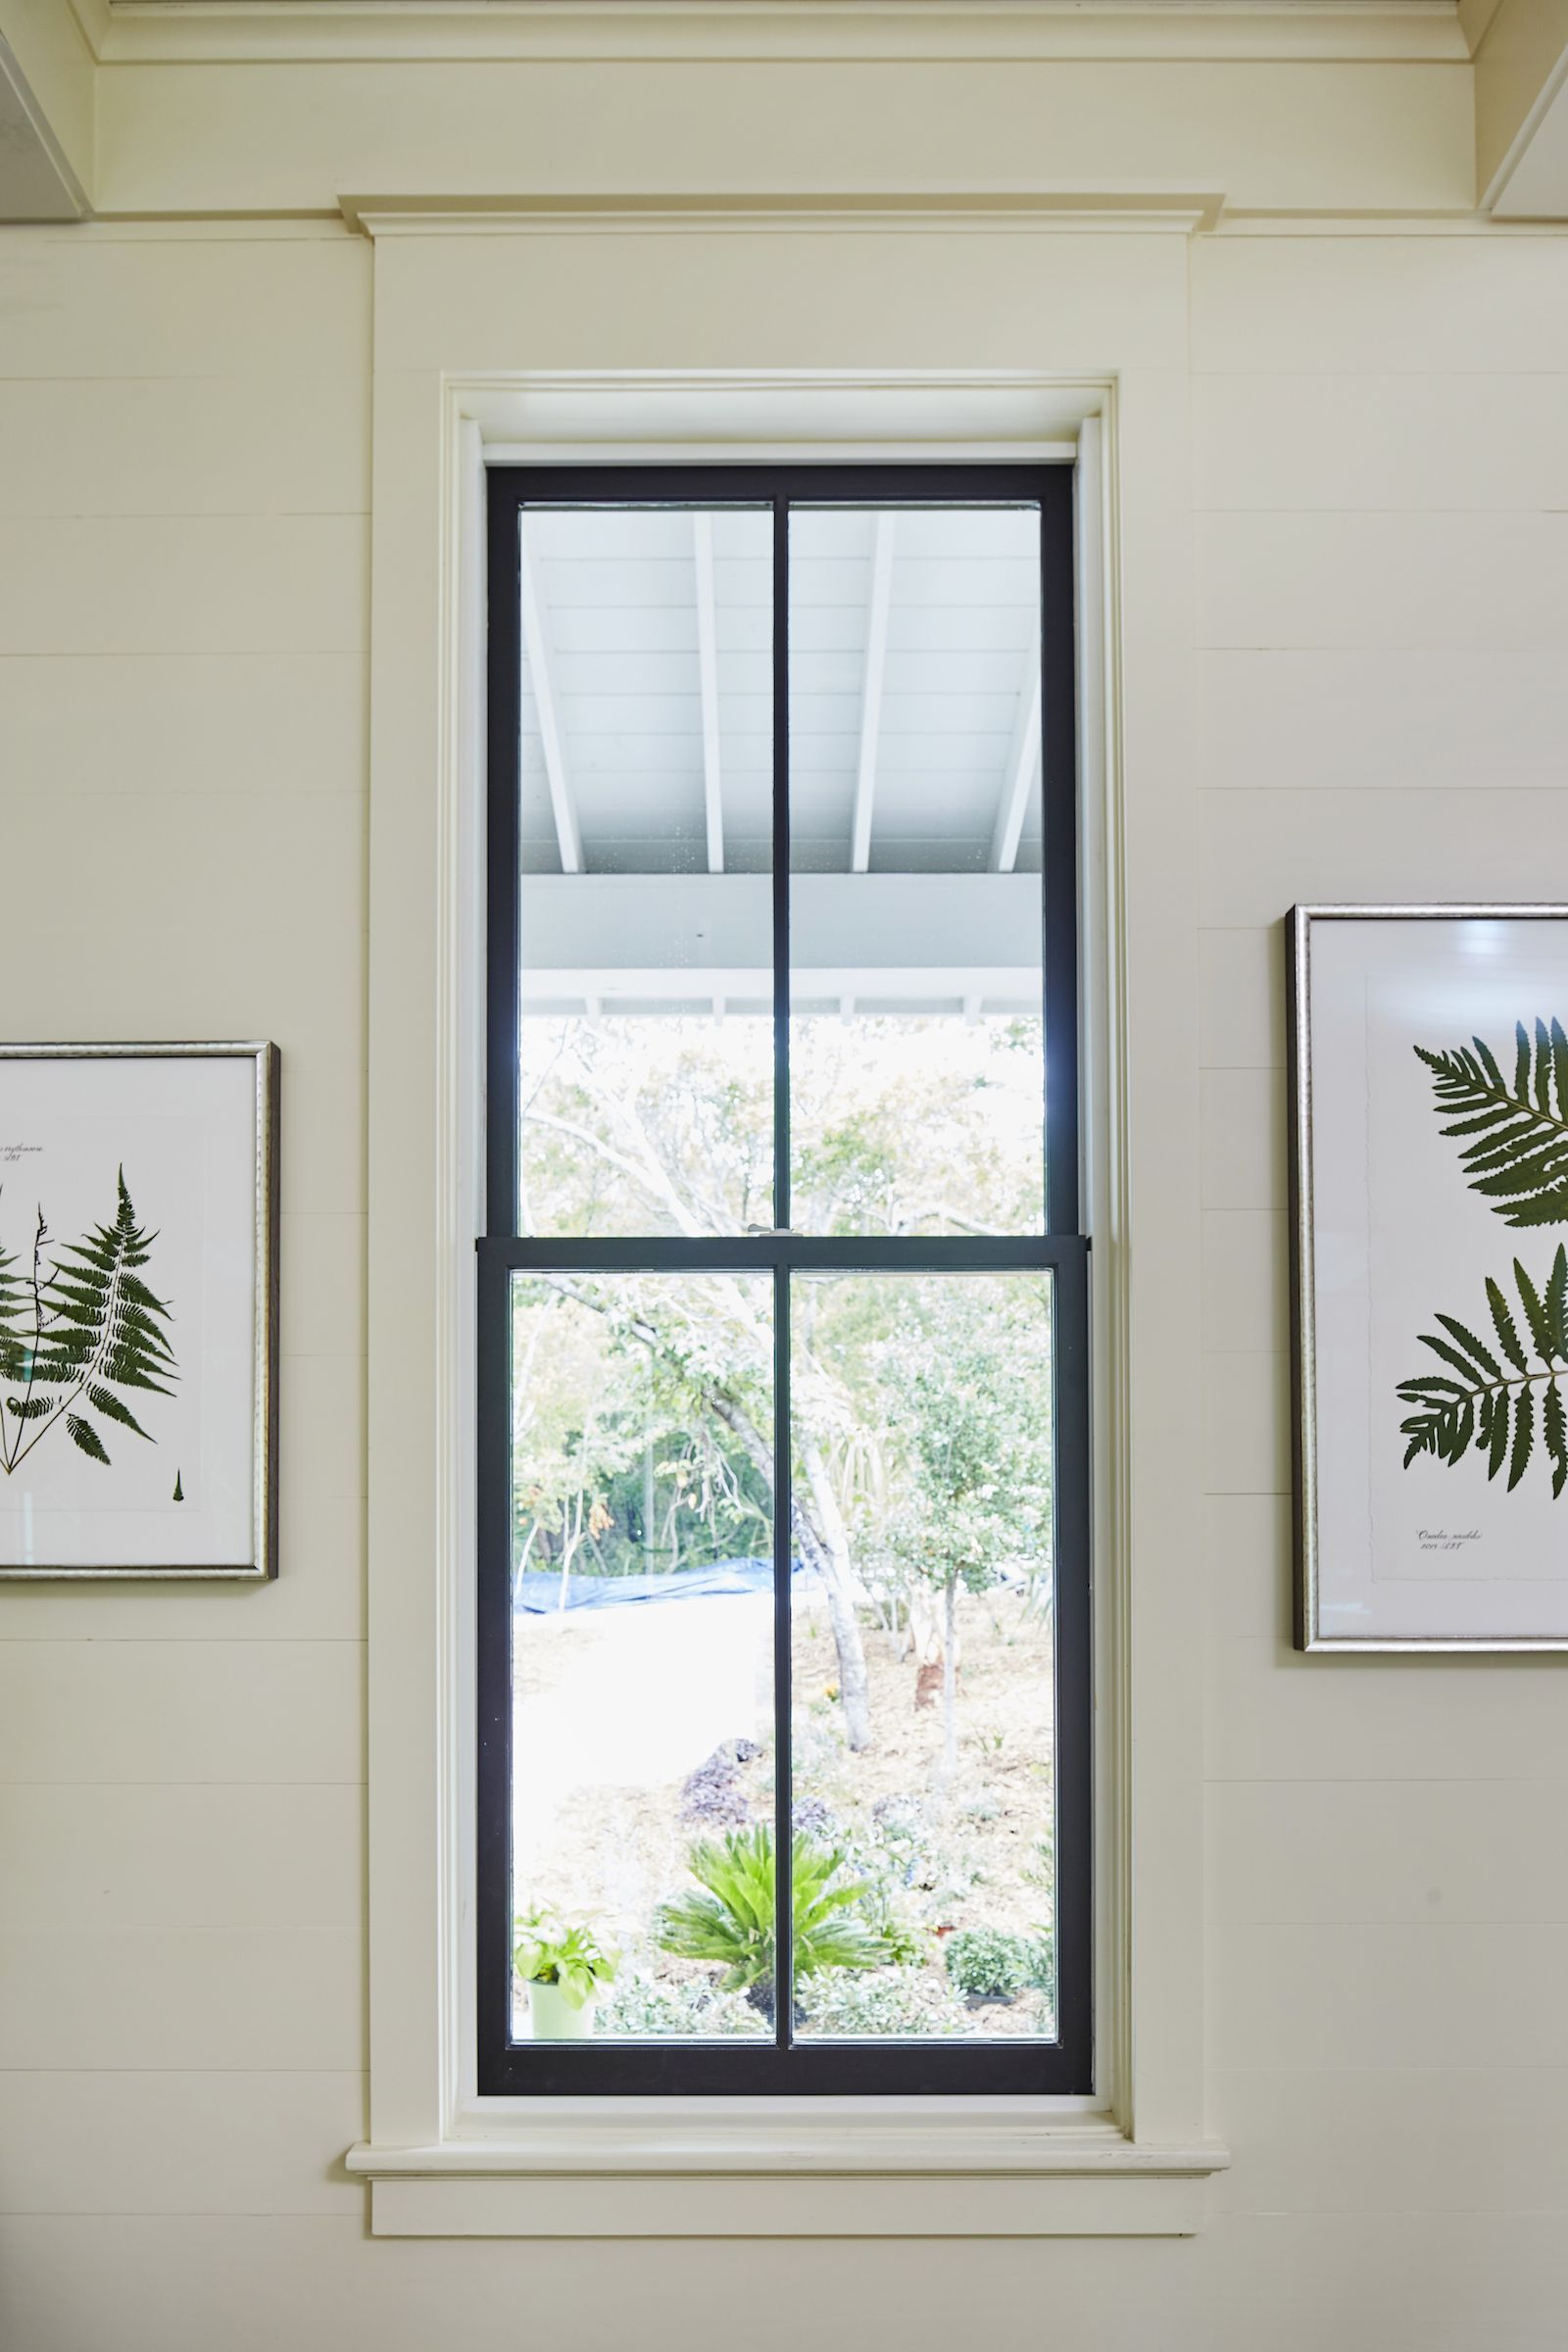 Mixing Window Finishes For A Barely There Look Interior Window Trim Black Window Trims Interior Windows